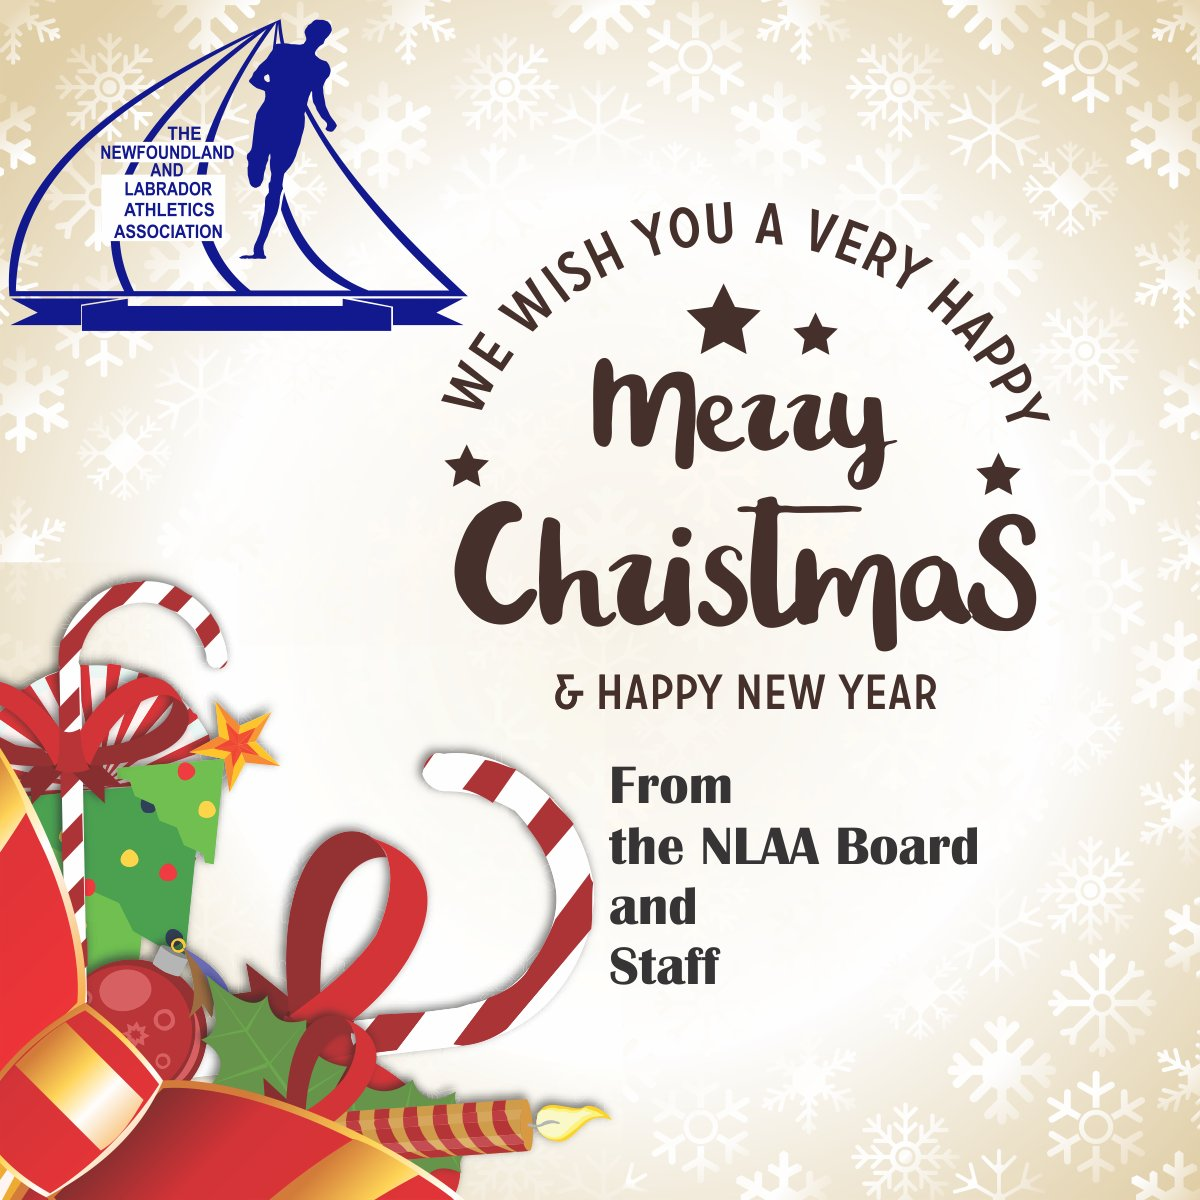 St bernards elem on twitter merry christmas and thank you for st bernards elem on twitter merry christmas and thank you for all that you do for our school running groups we appreciate all that you do so that we kristyandbryce Choice Image